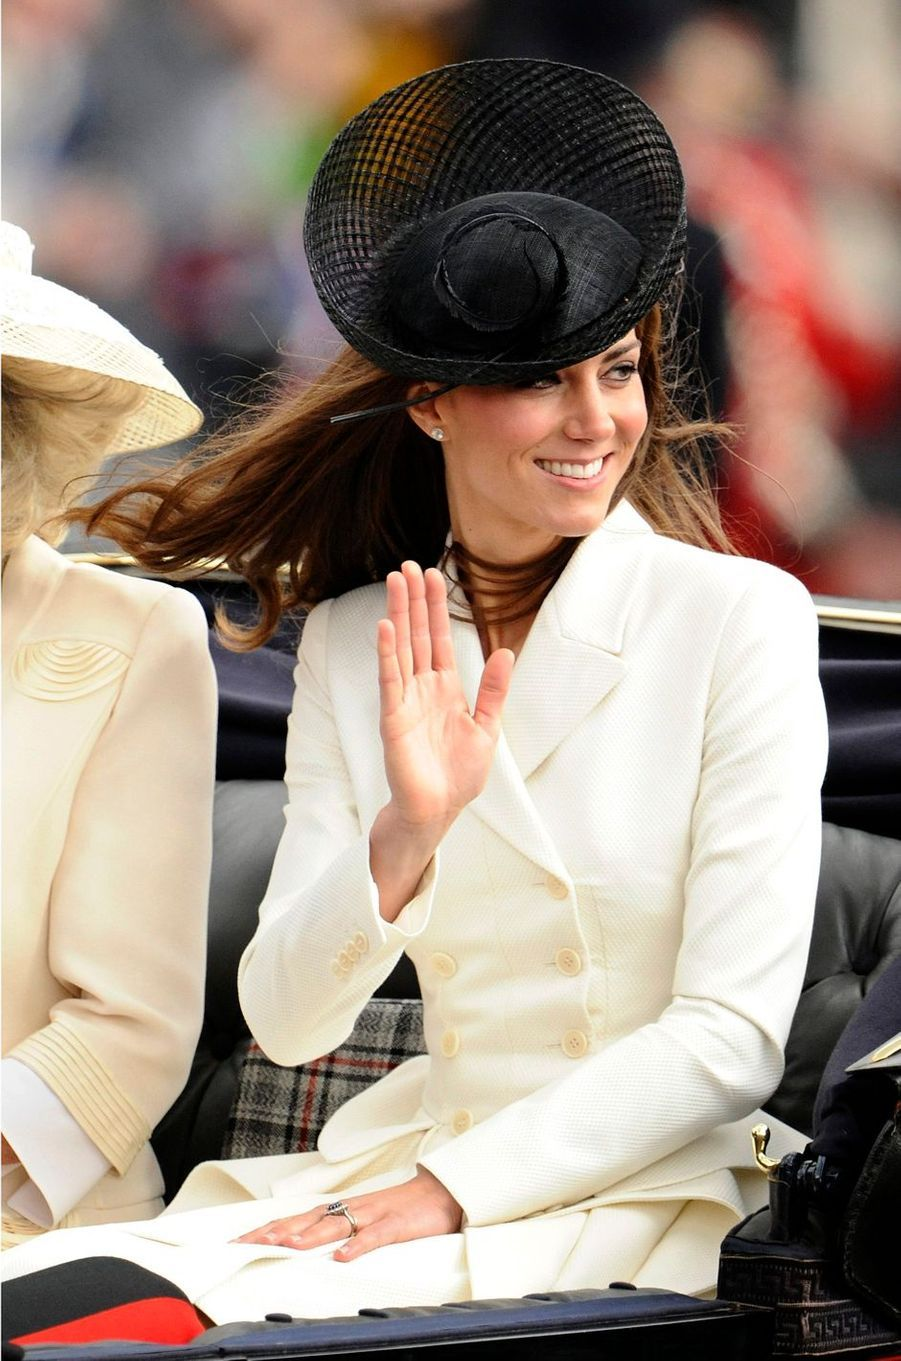 La duchesse Catherine de Cambridge en Alexander McQueen à la cérémonie Trooping the Colour à Londres le 11 juin 2011